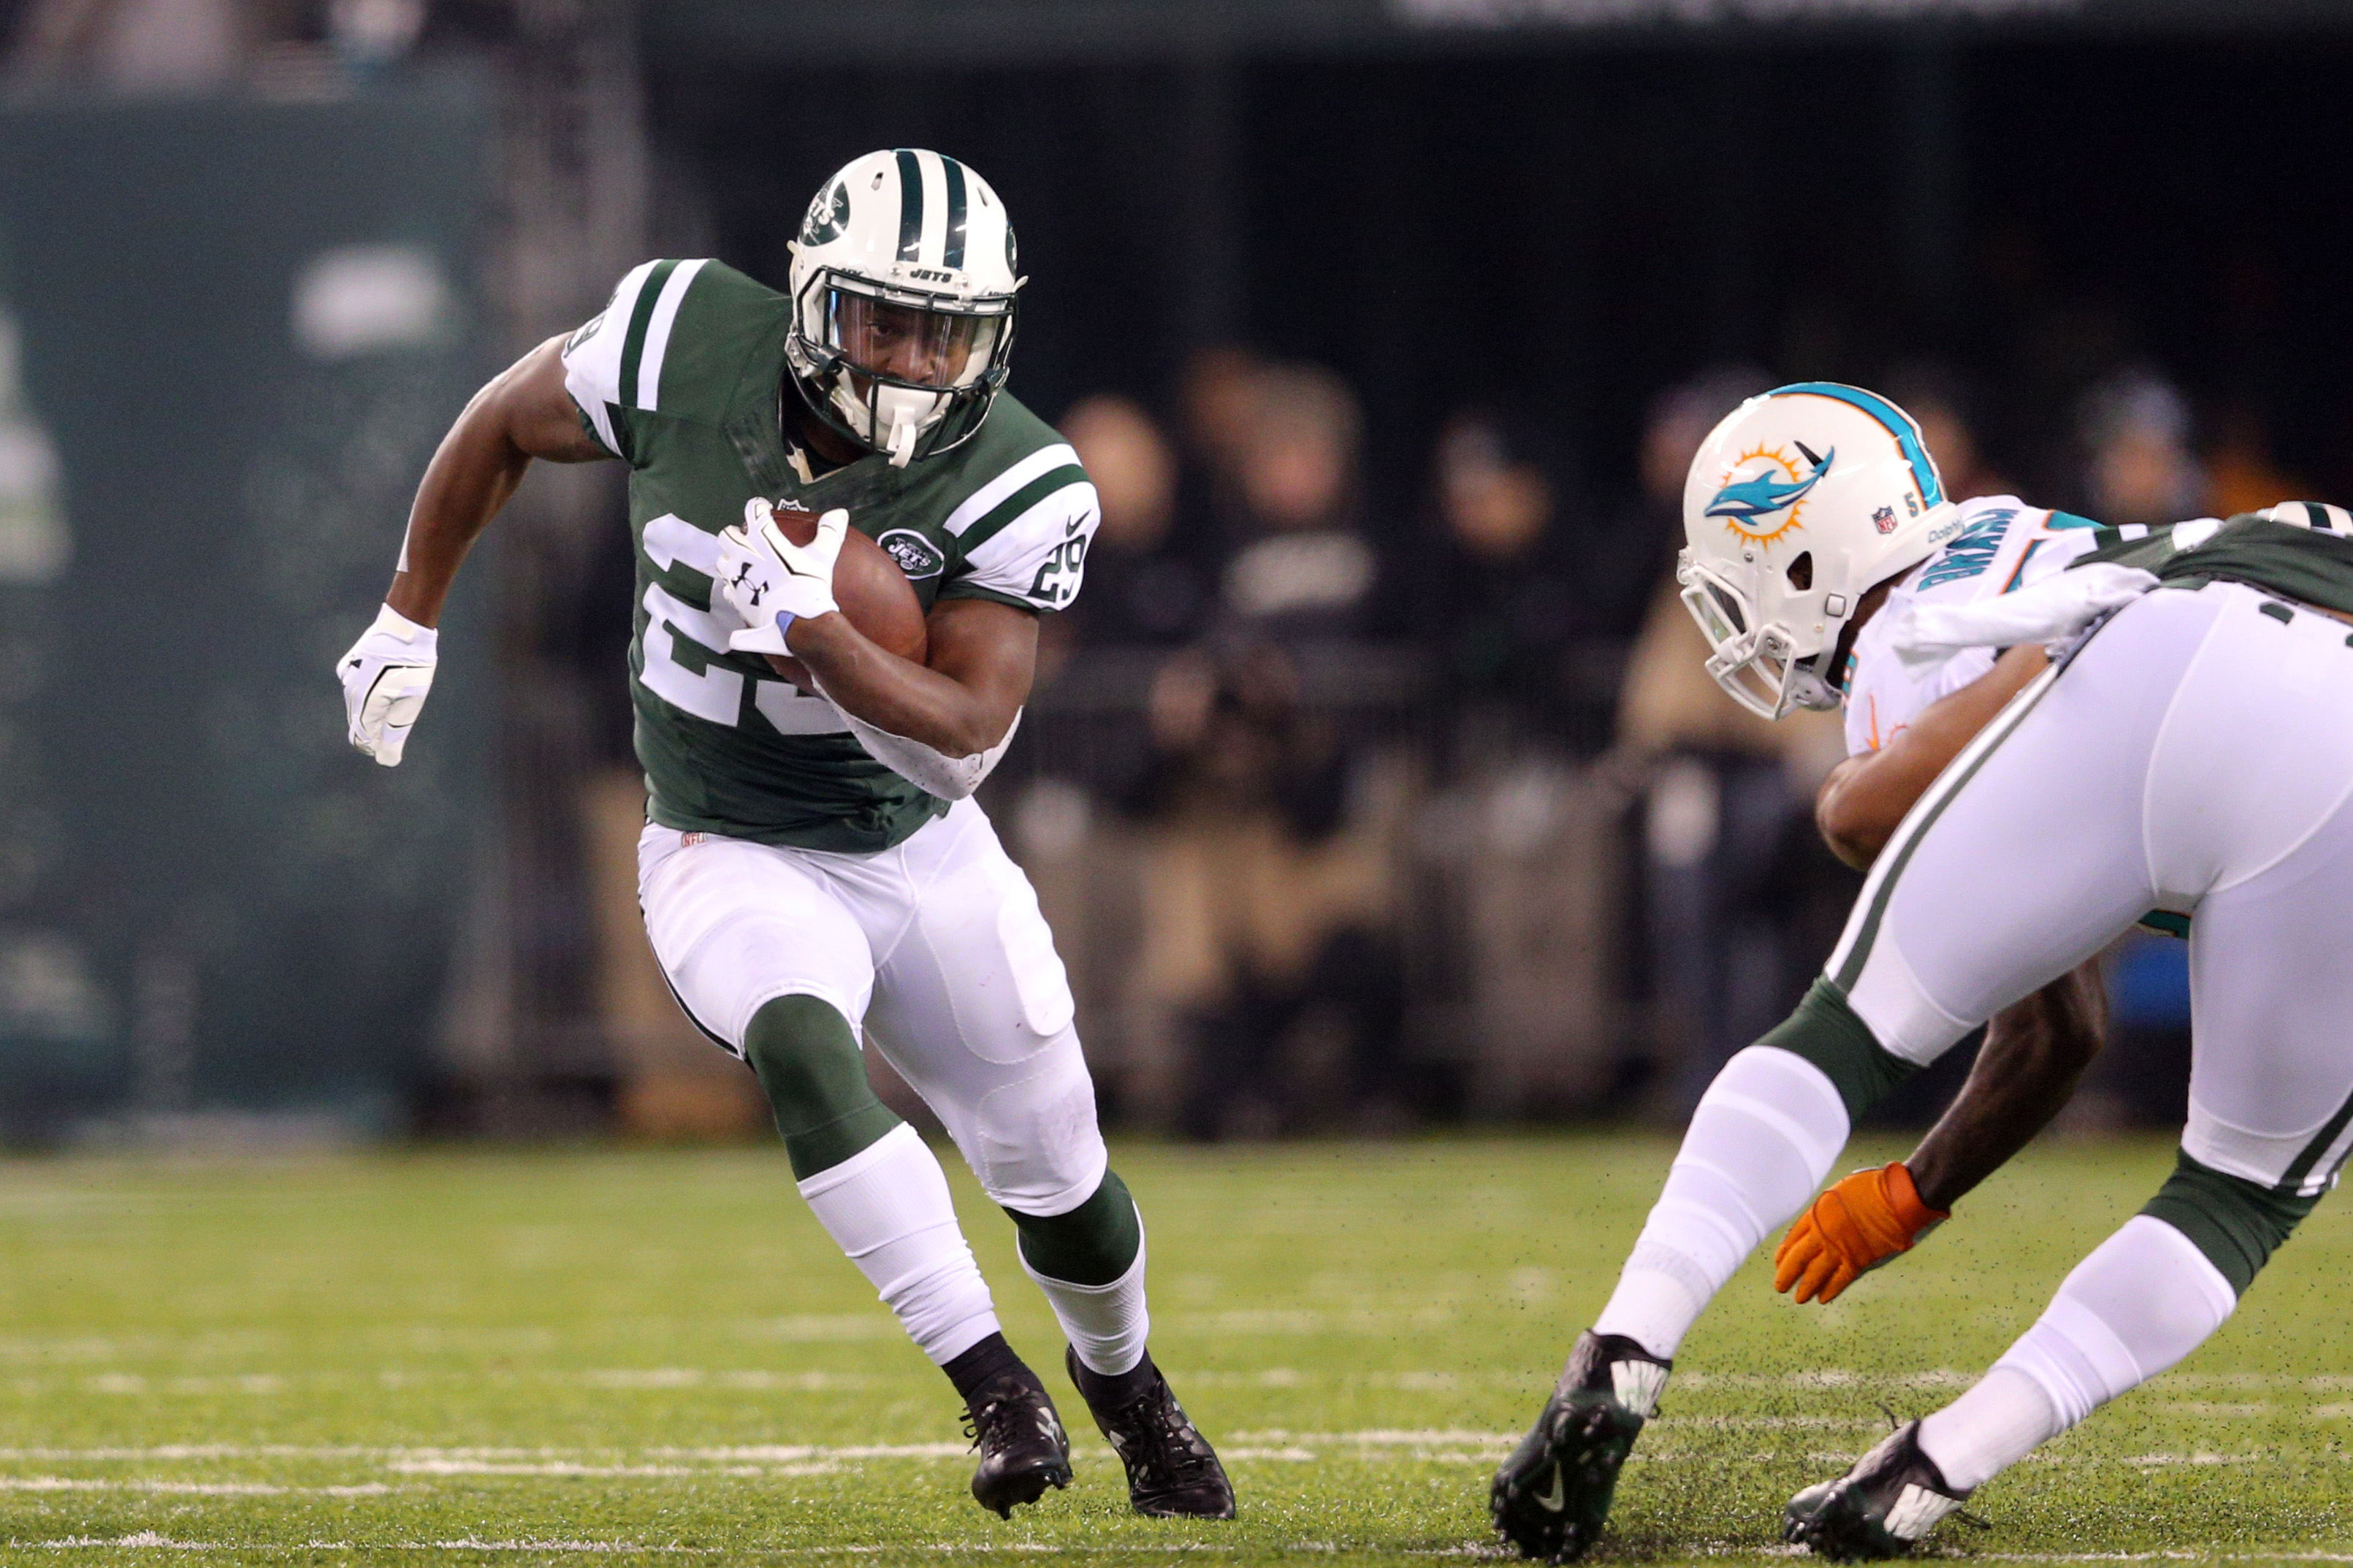 9752847-nfl-miami-dolphins-at-new-york-jets